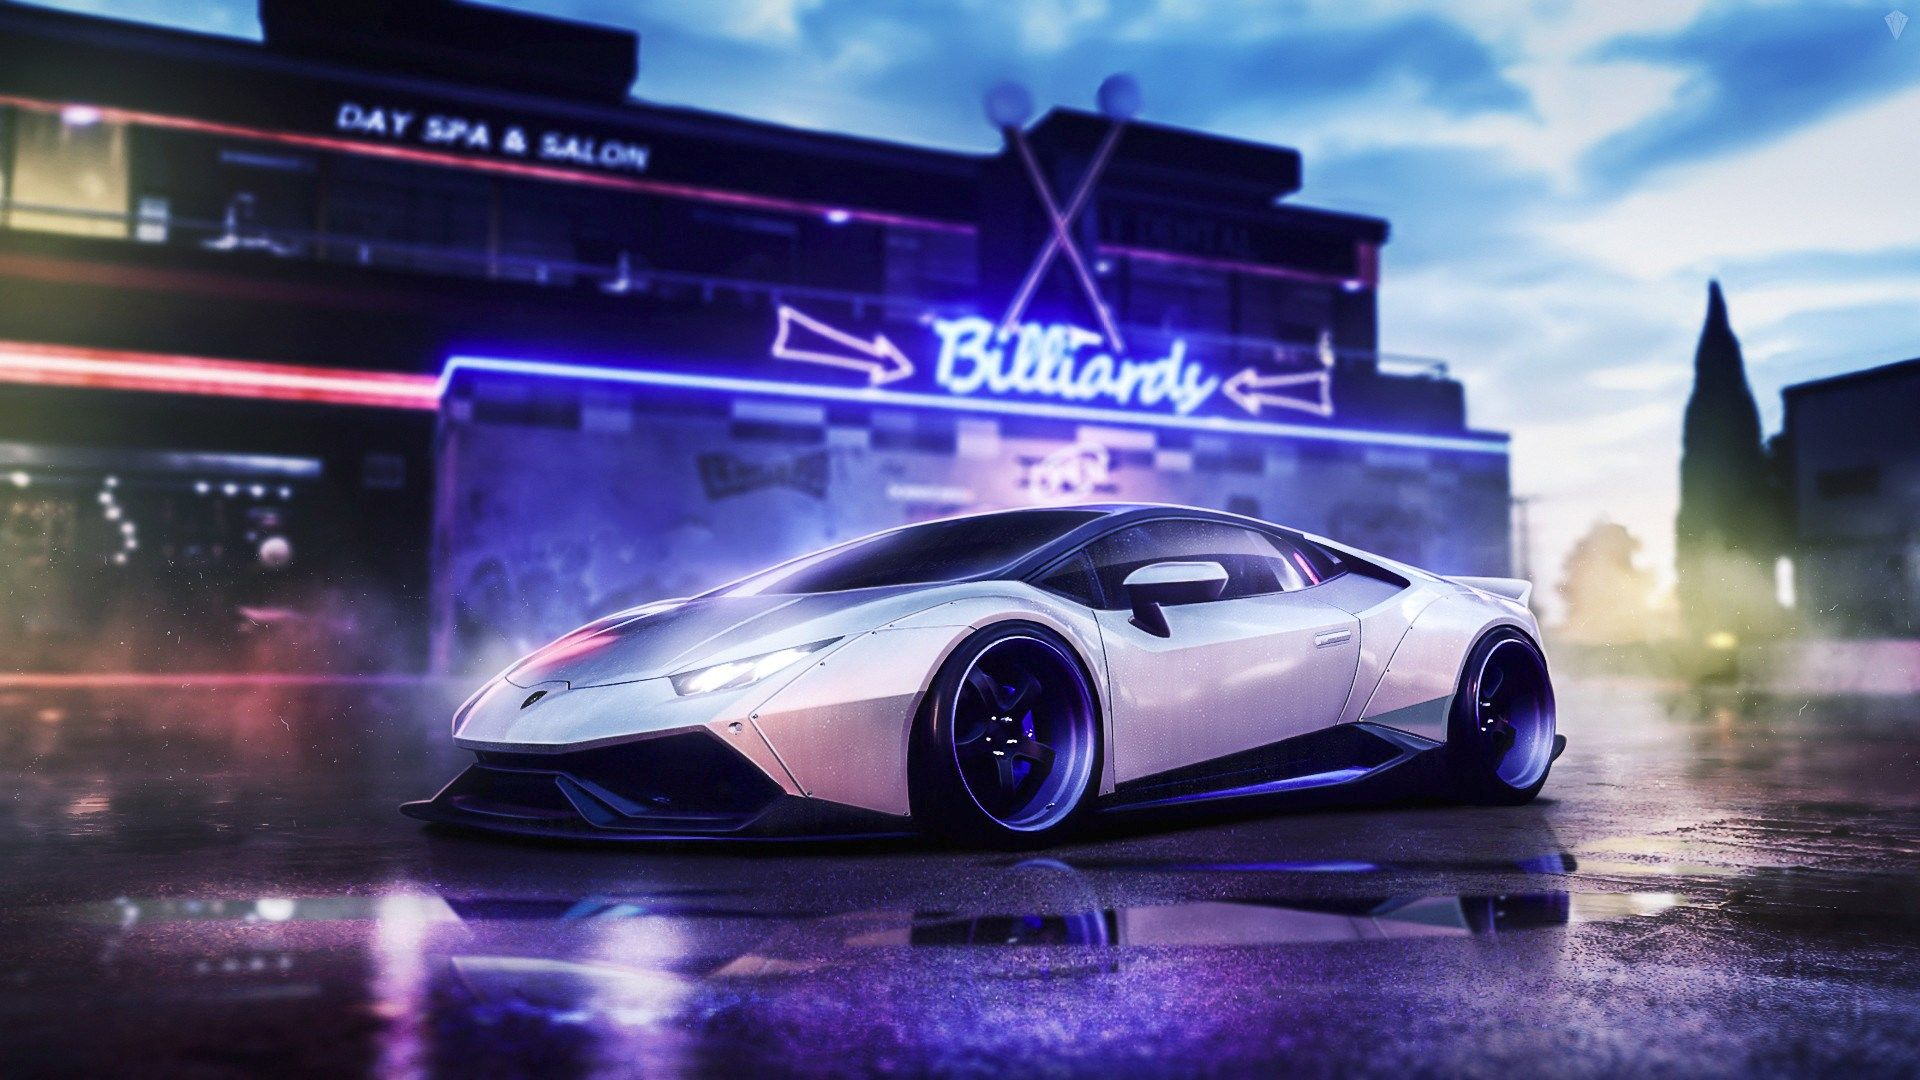 9e7eb8aca24cd61033a8a71cbfebf513 Fabulous Lamborghini Huracan Need for Speed 2015 Cars Trend